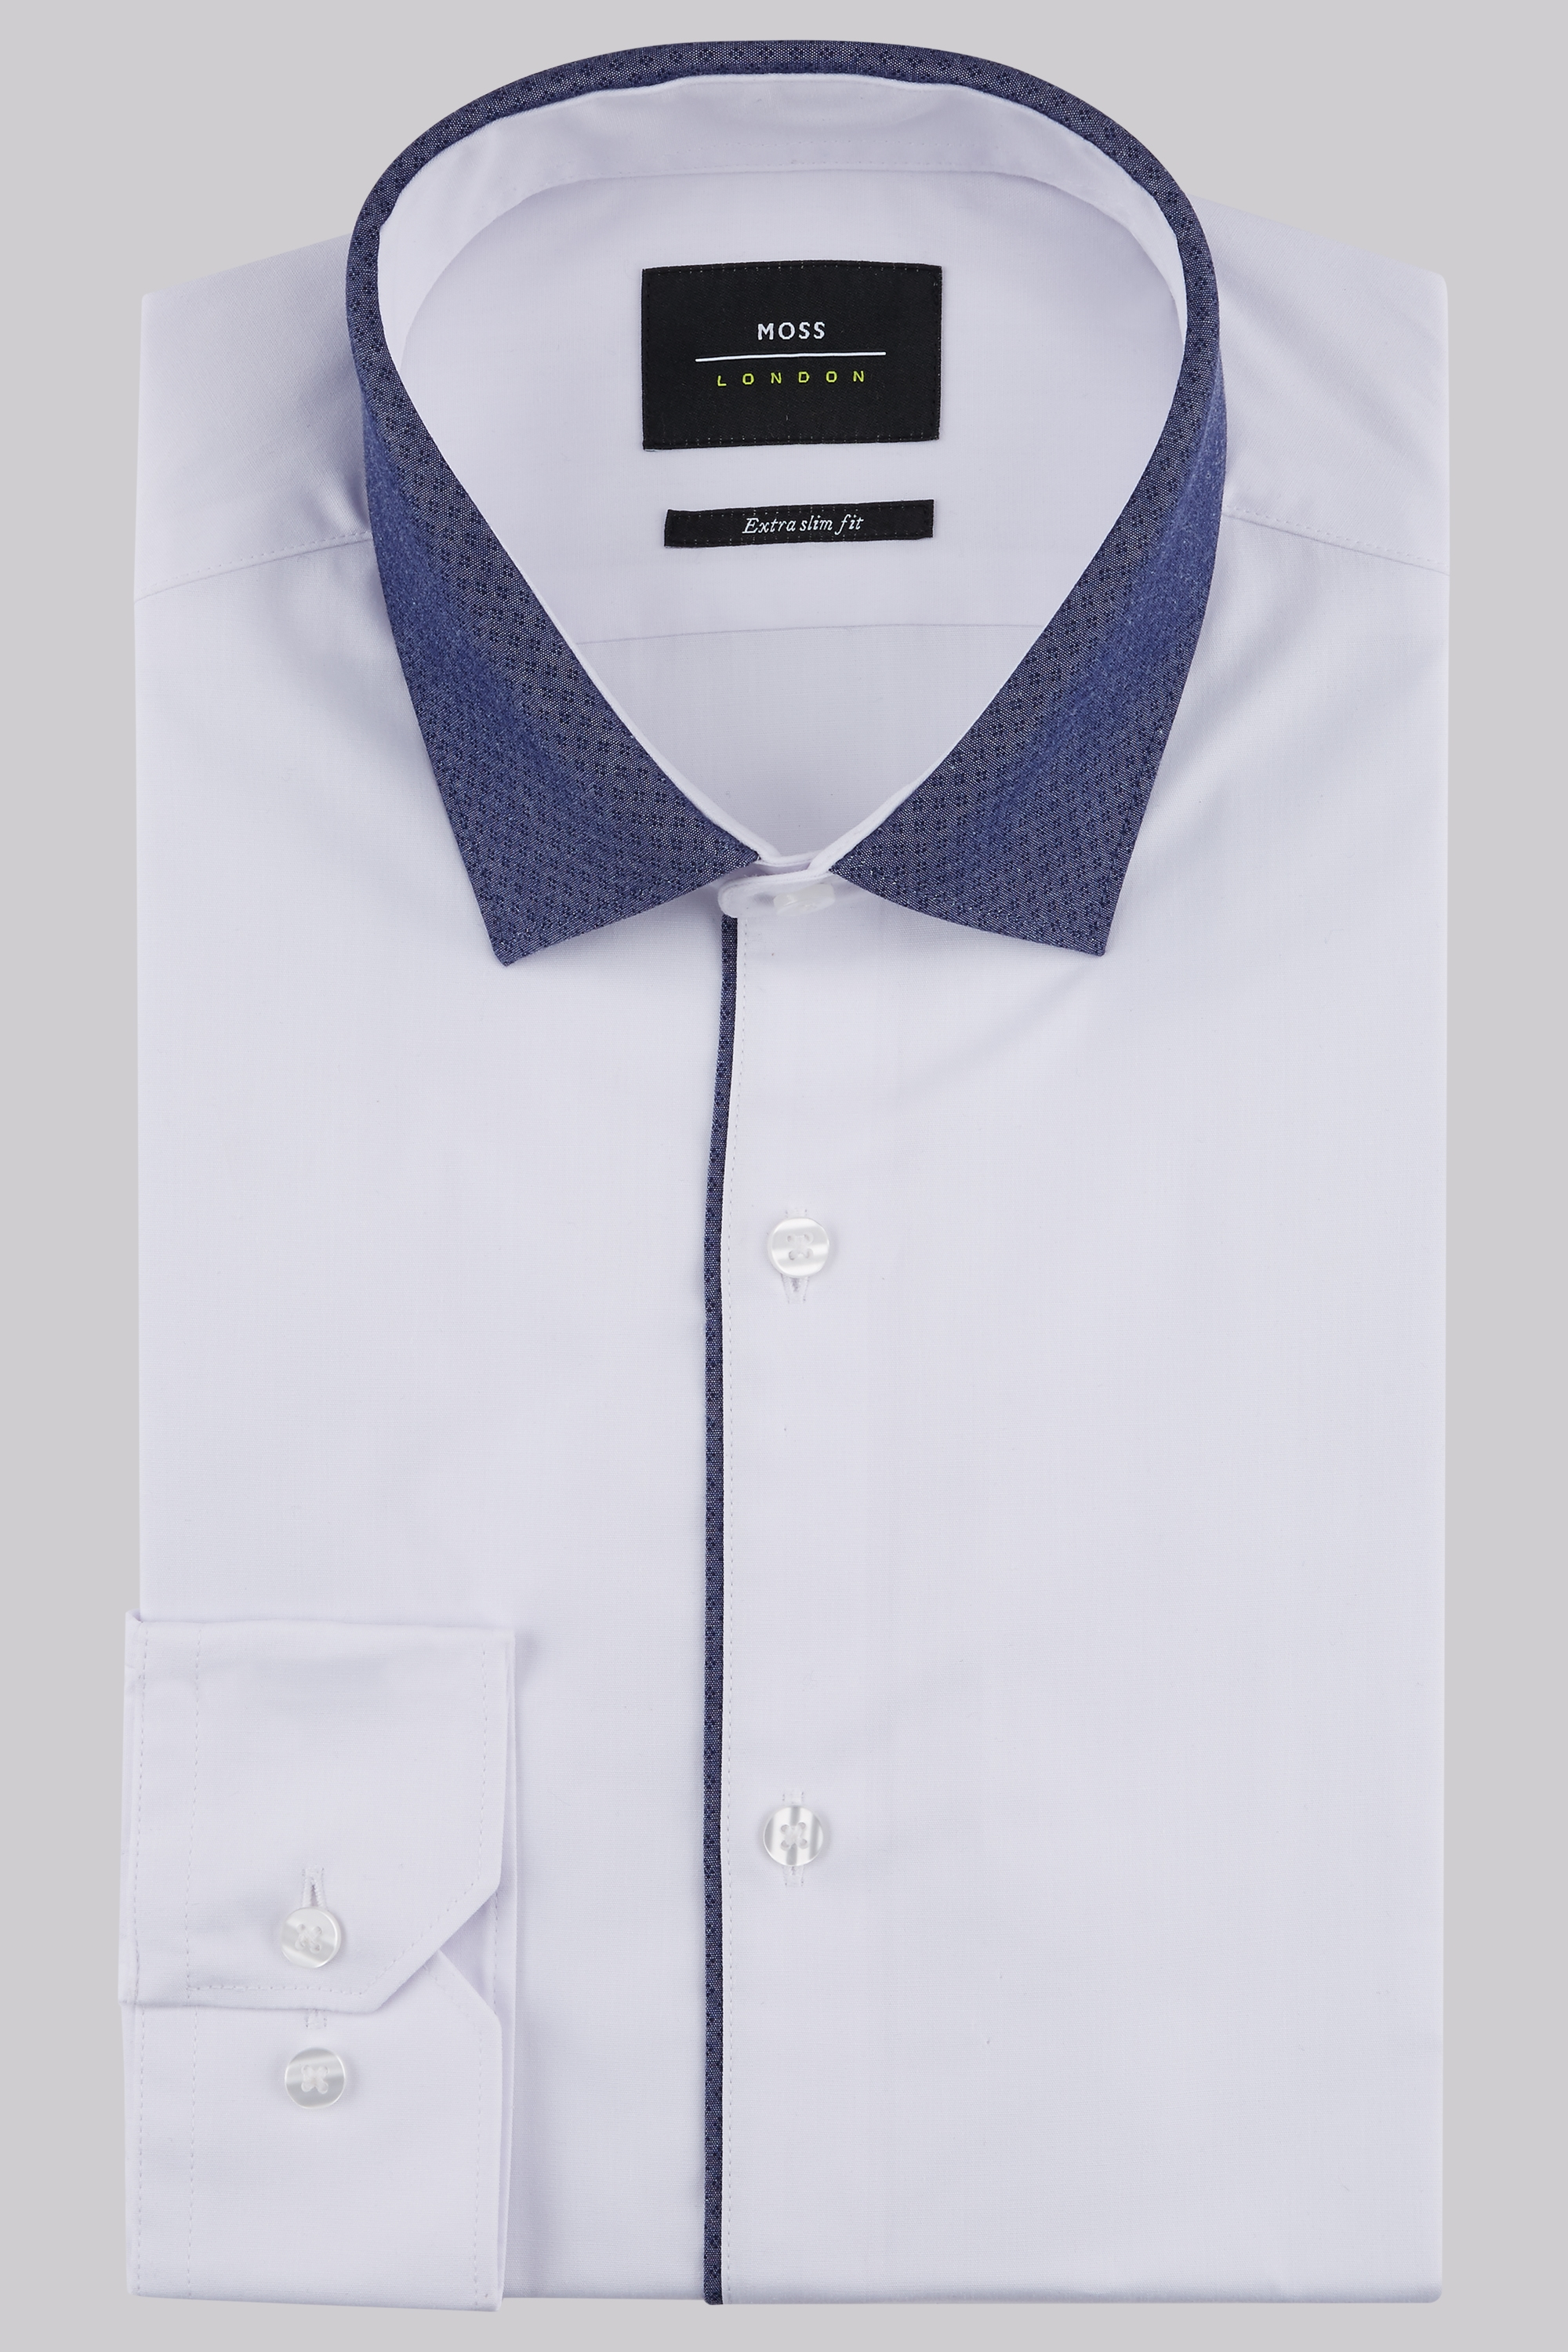 ... Contrast Collar Shirt. prev